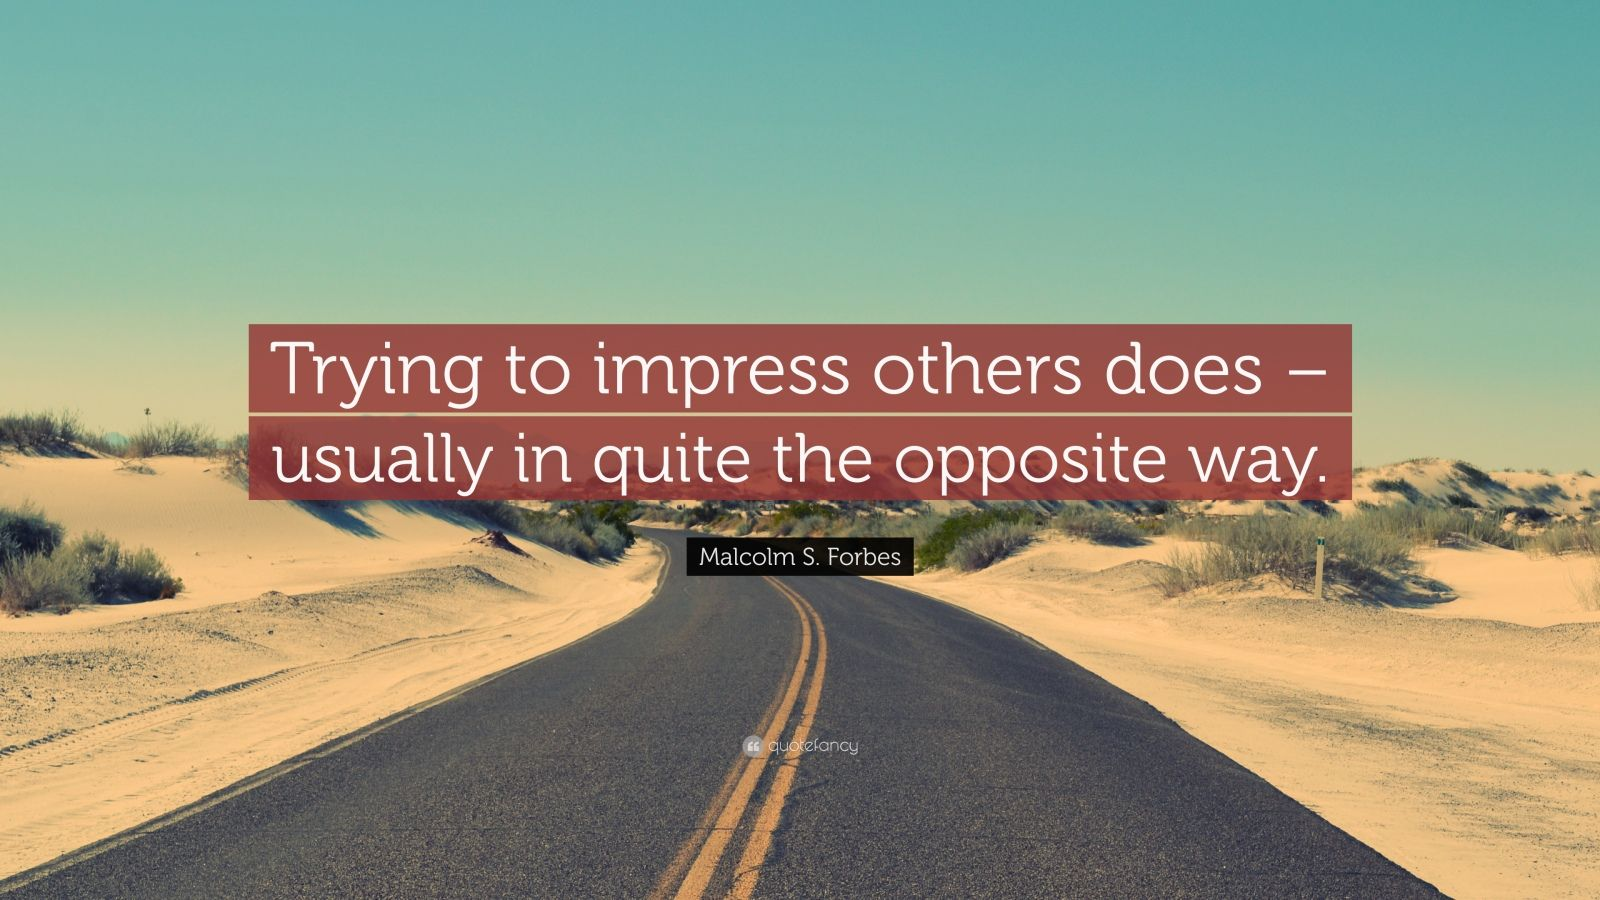 """Malcolm S. Forbes Quote: """"Trying to impress others does – usually in quite the opposite way."""""""